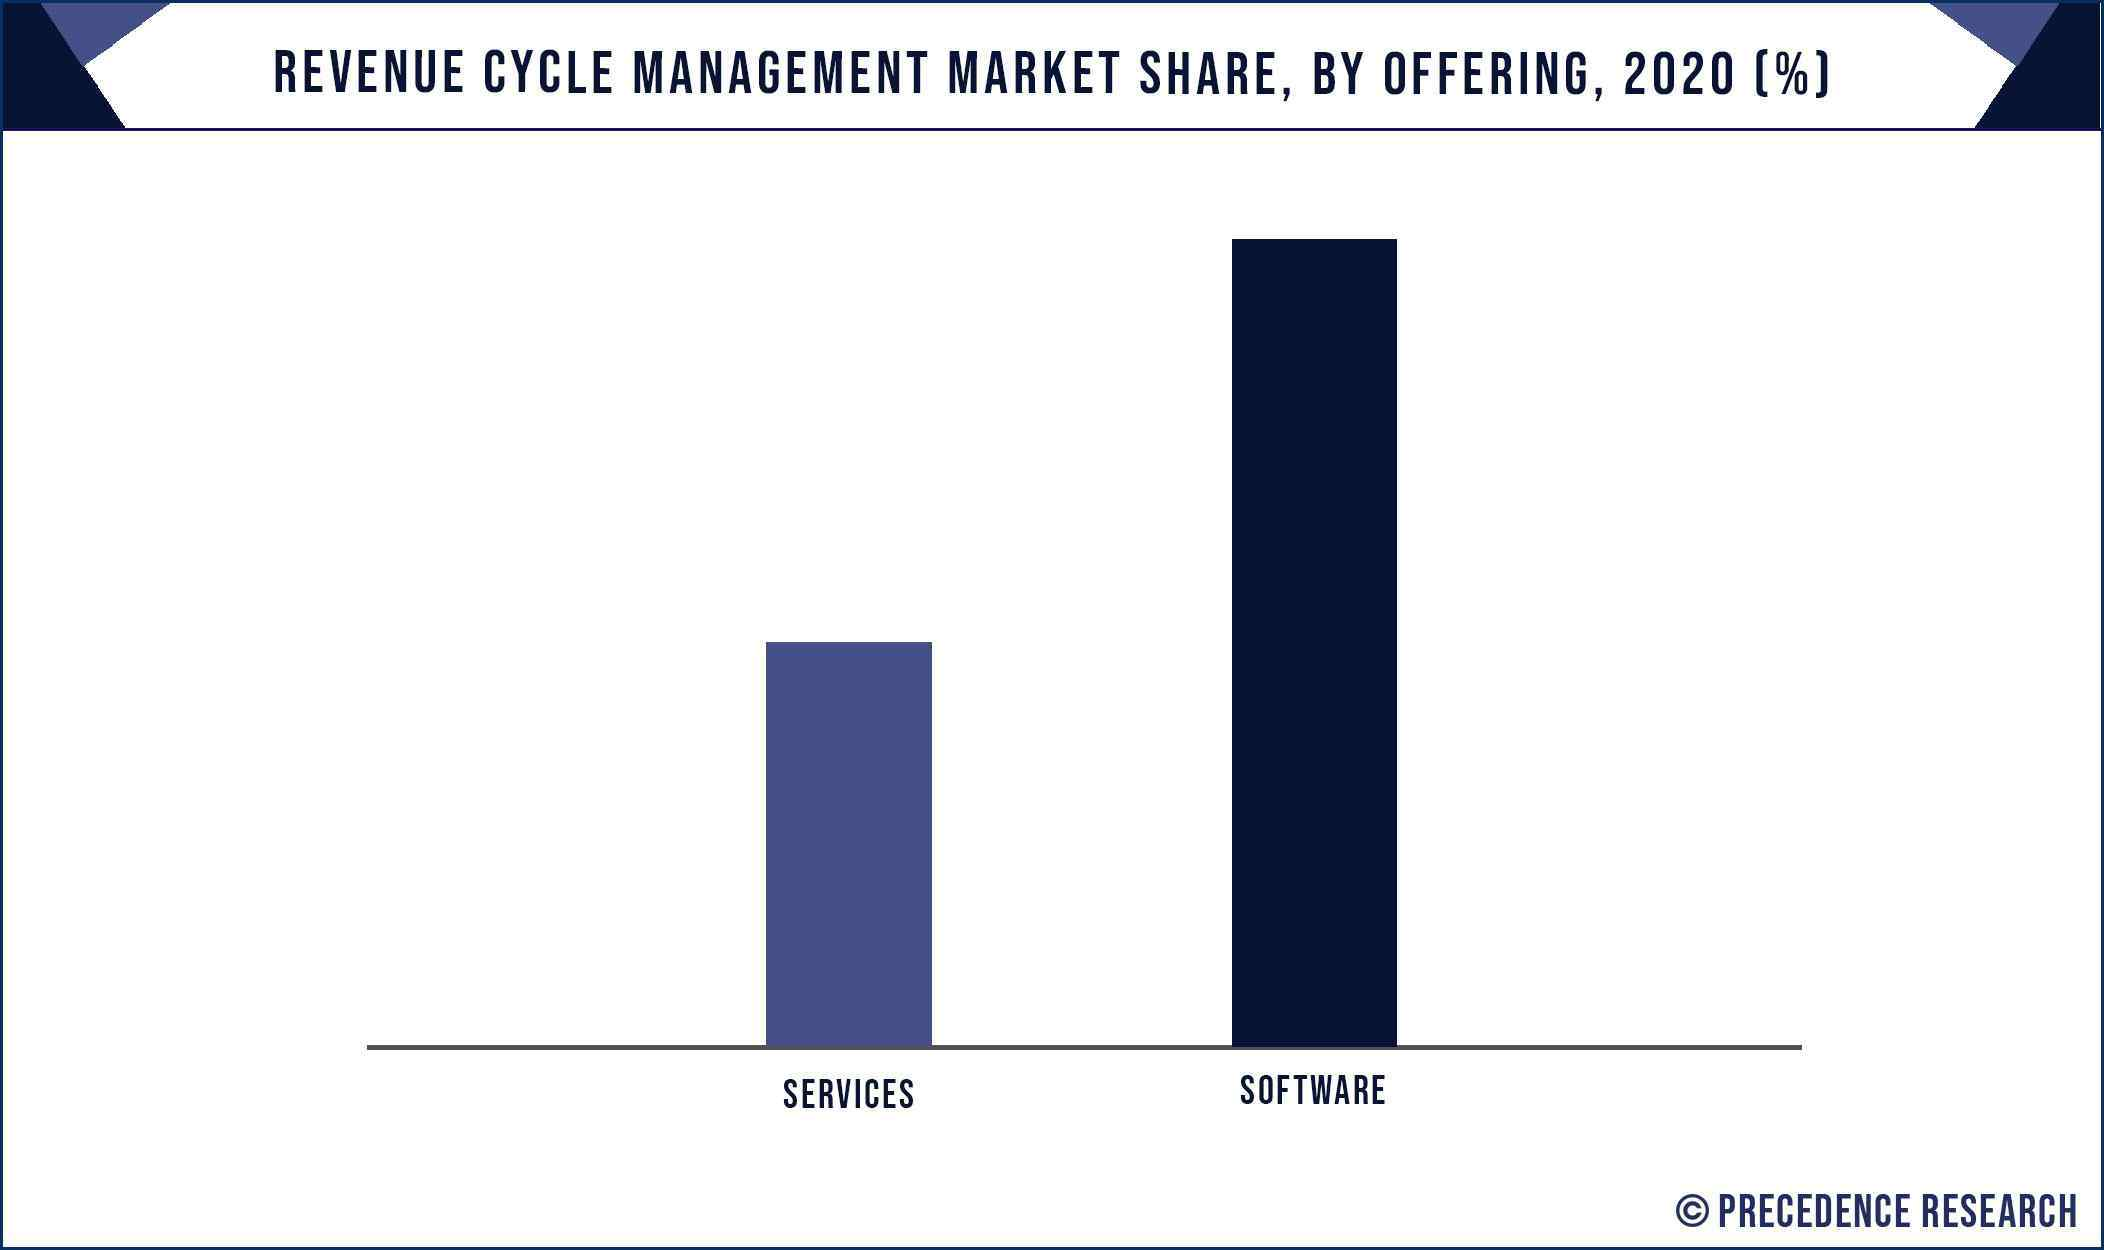 Revenue Cycle Management Market Share, By Offering, 2020 (%)